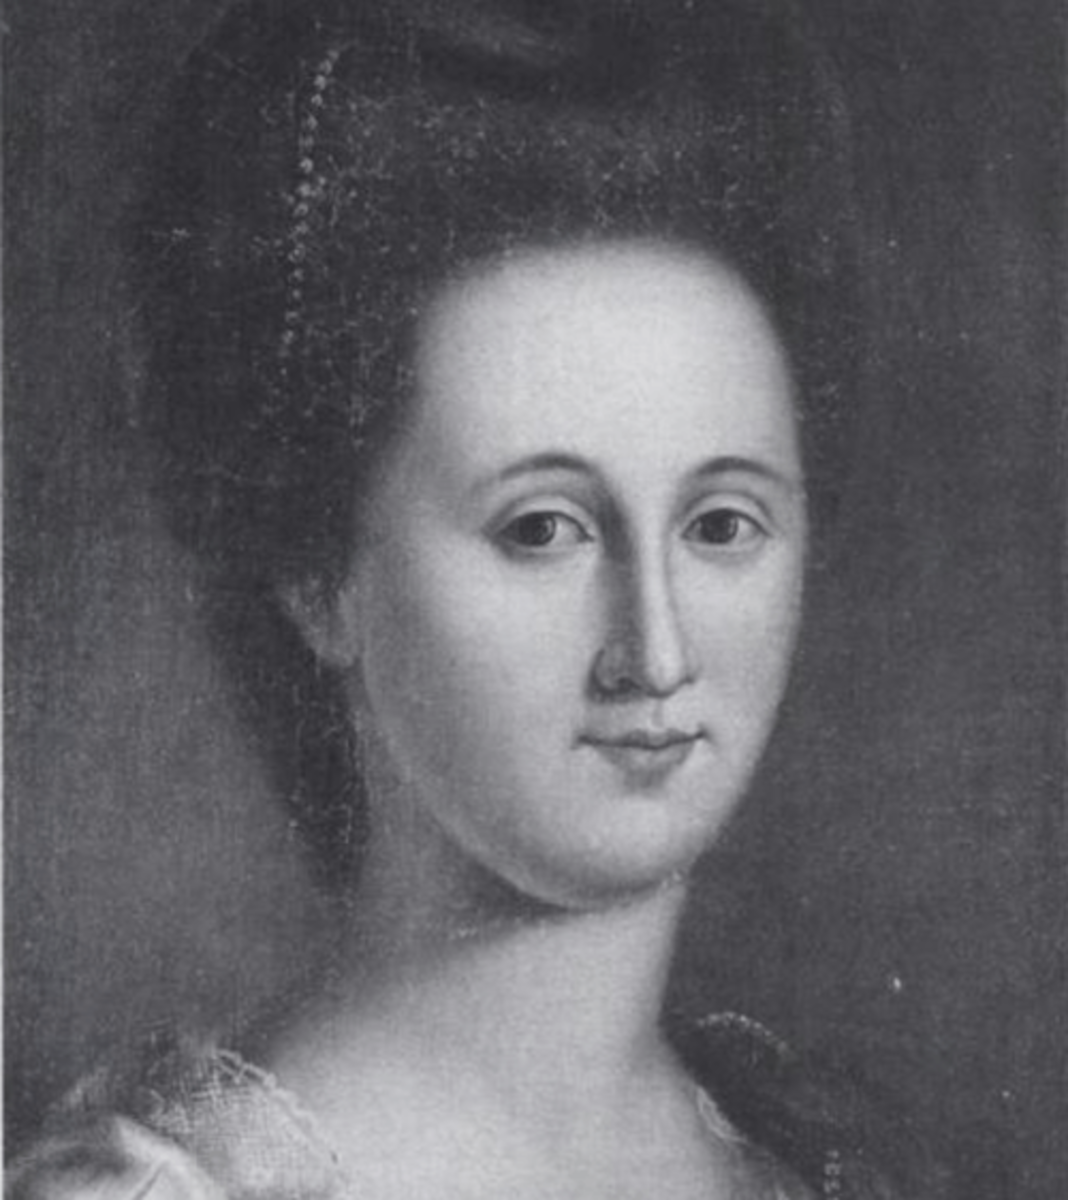 Prudence constructed a militia of women to protect her town of Pepperell while the men were away at war.